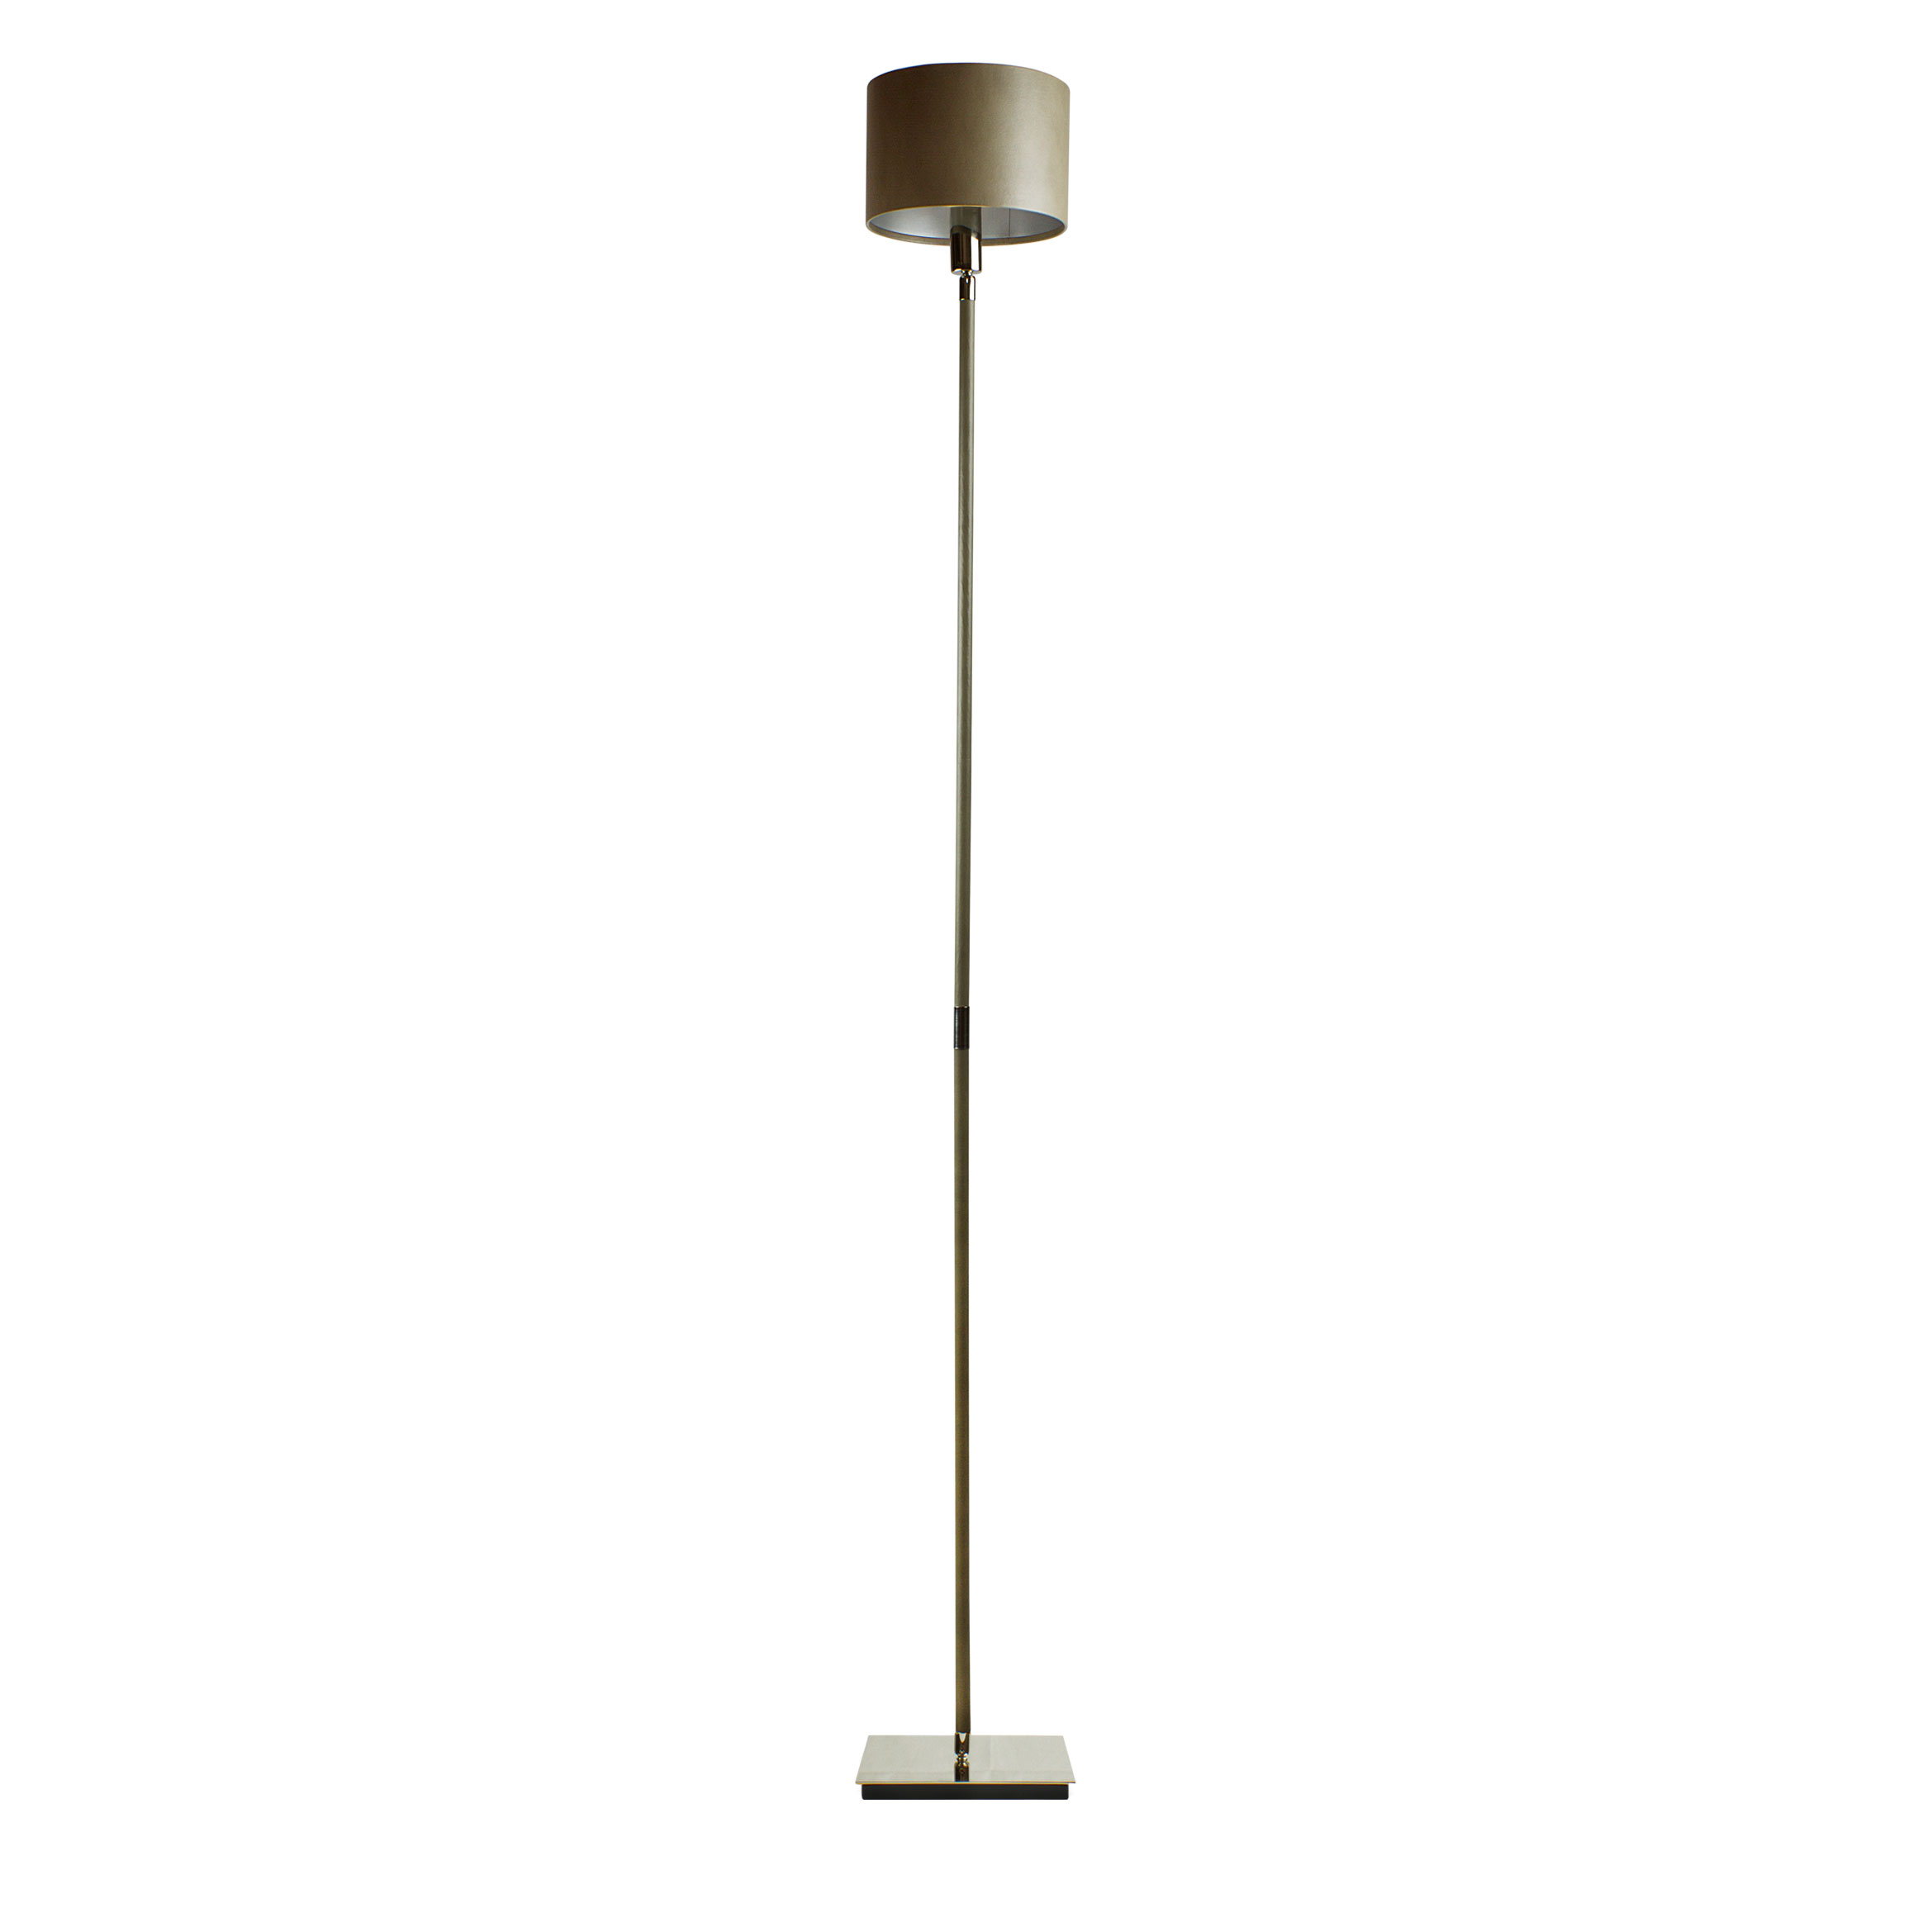 Linea villaverde london villaverde london linea metal leather floor lamp square3 aloadofball Image collections